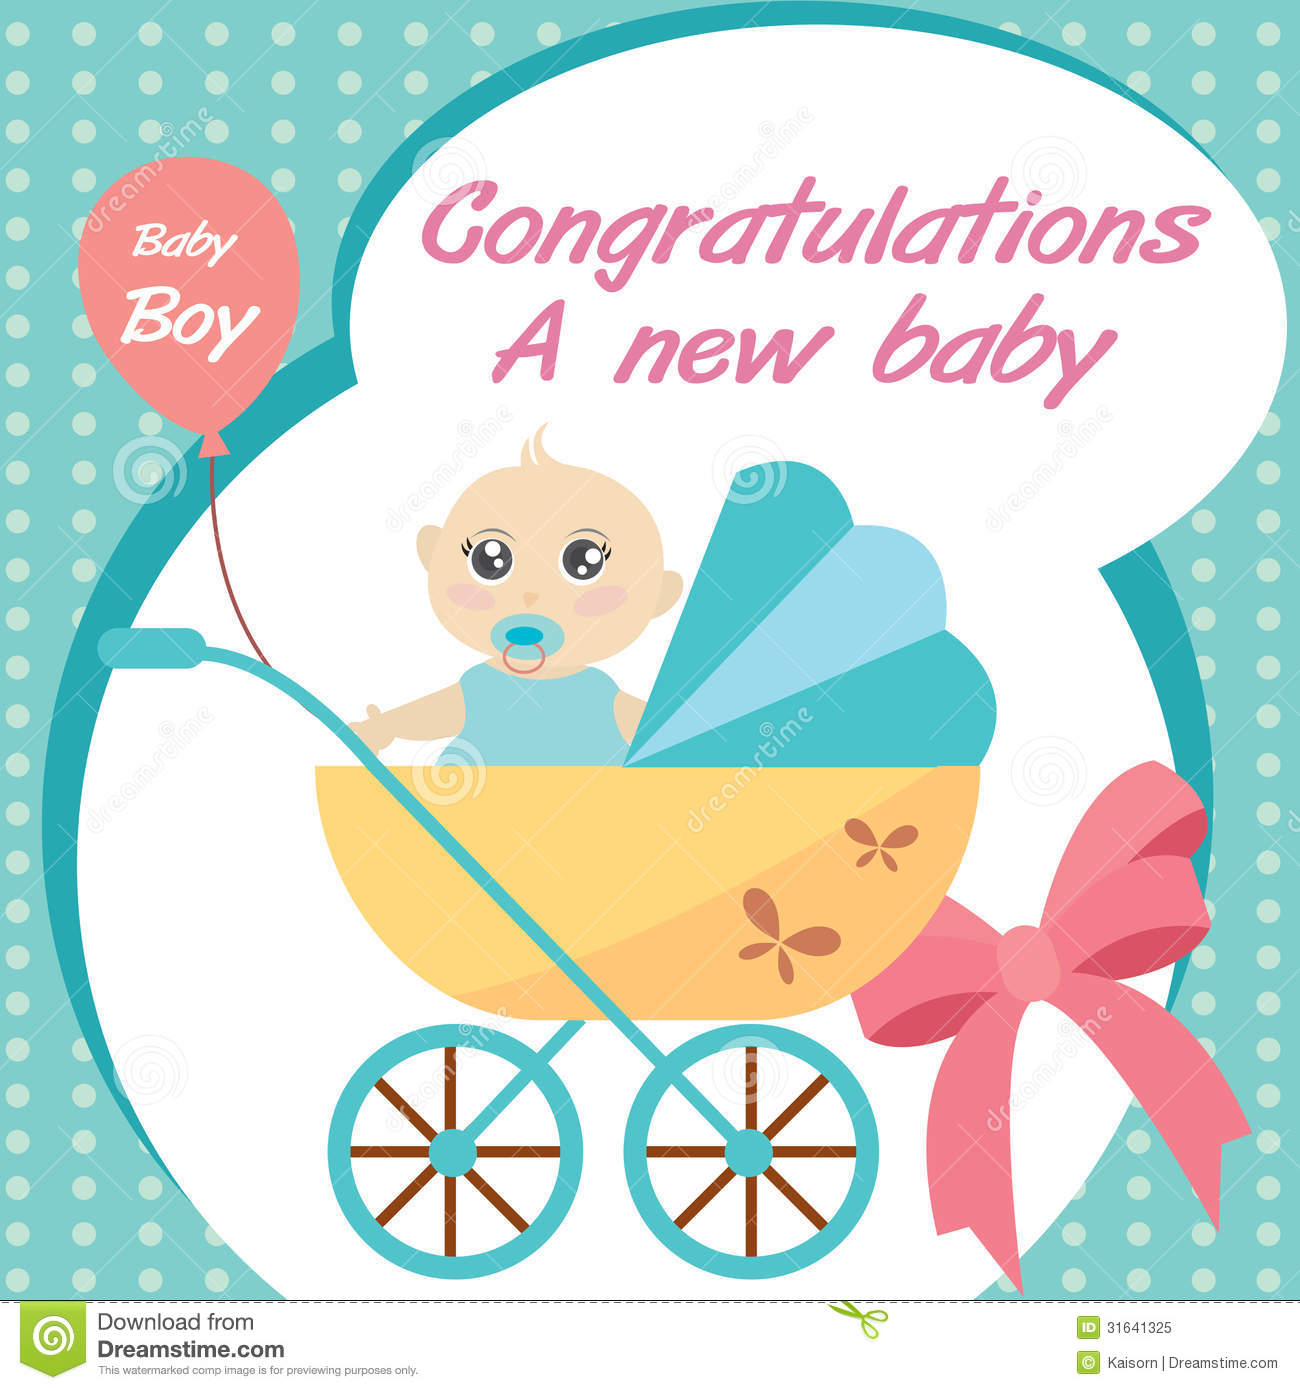 Newborn baby boy cards roho4senses newborn baby boy cards m4hsunfo